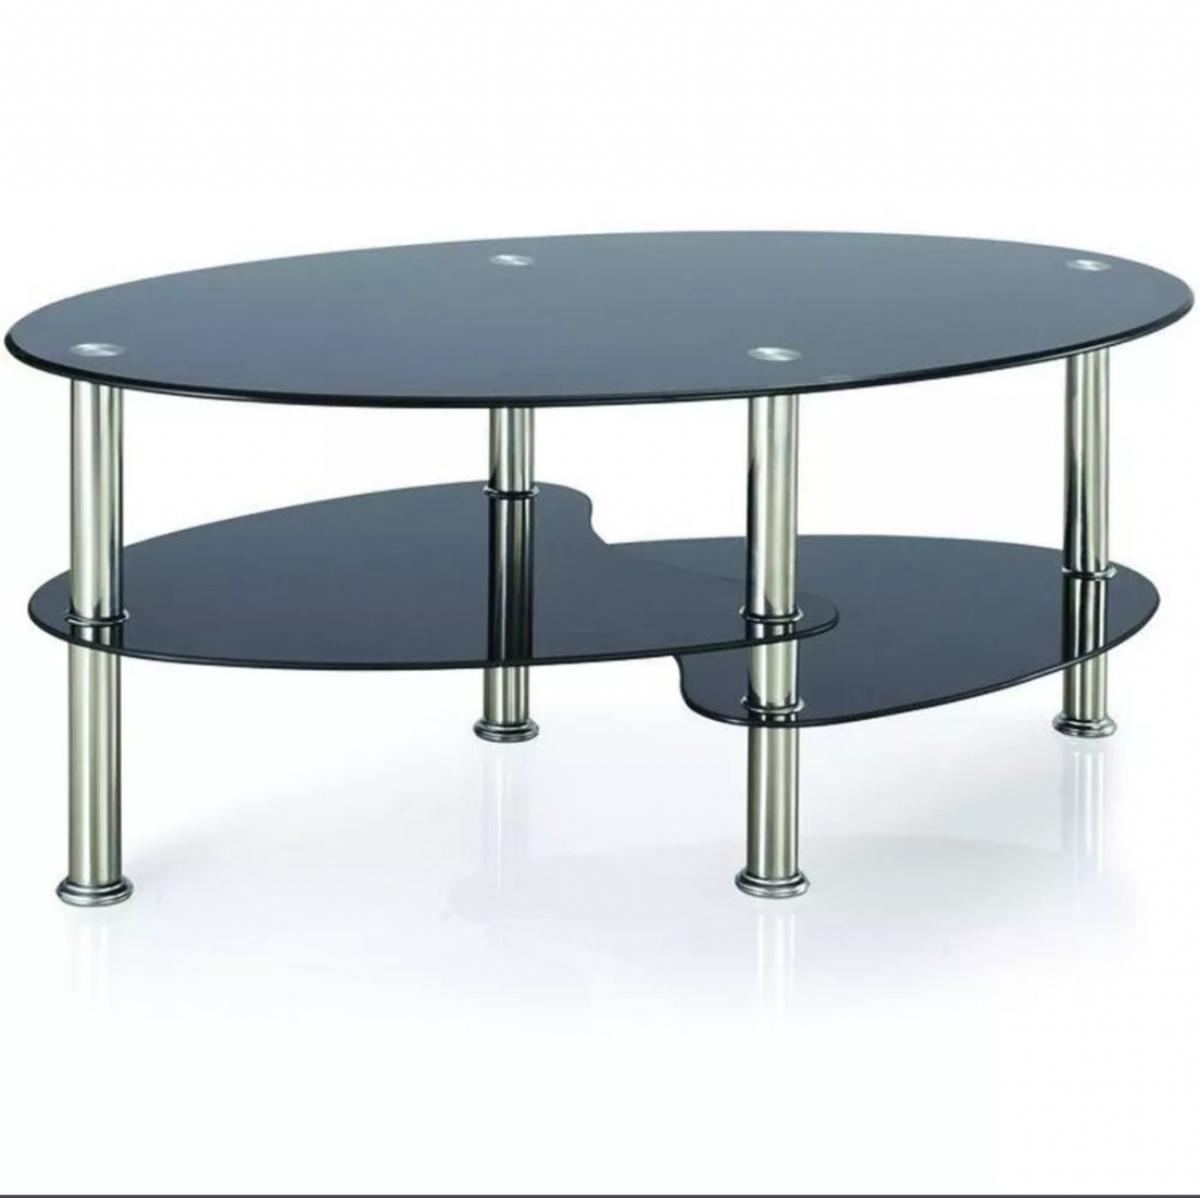 Picture of: Coffee Table Black Glass Stainless Legs In Ta6 Sedgemoor For 15 00 For Sale Shpock